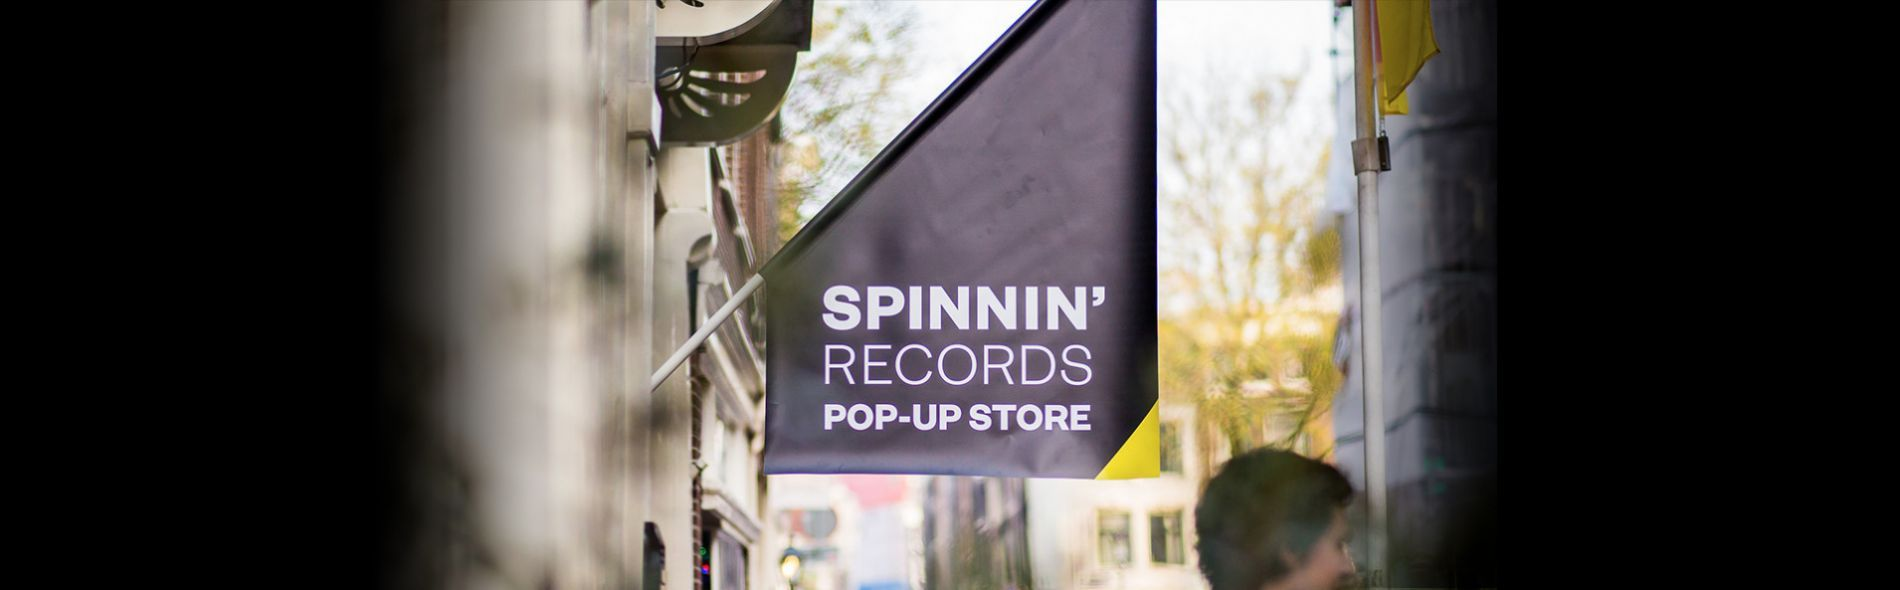 Spinnin' Records Pop-up store 2017